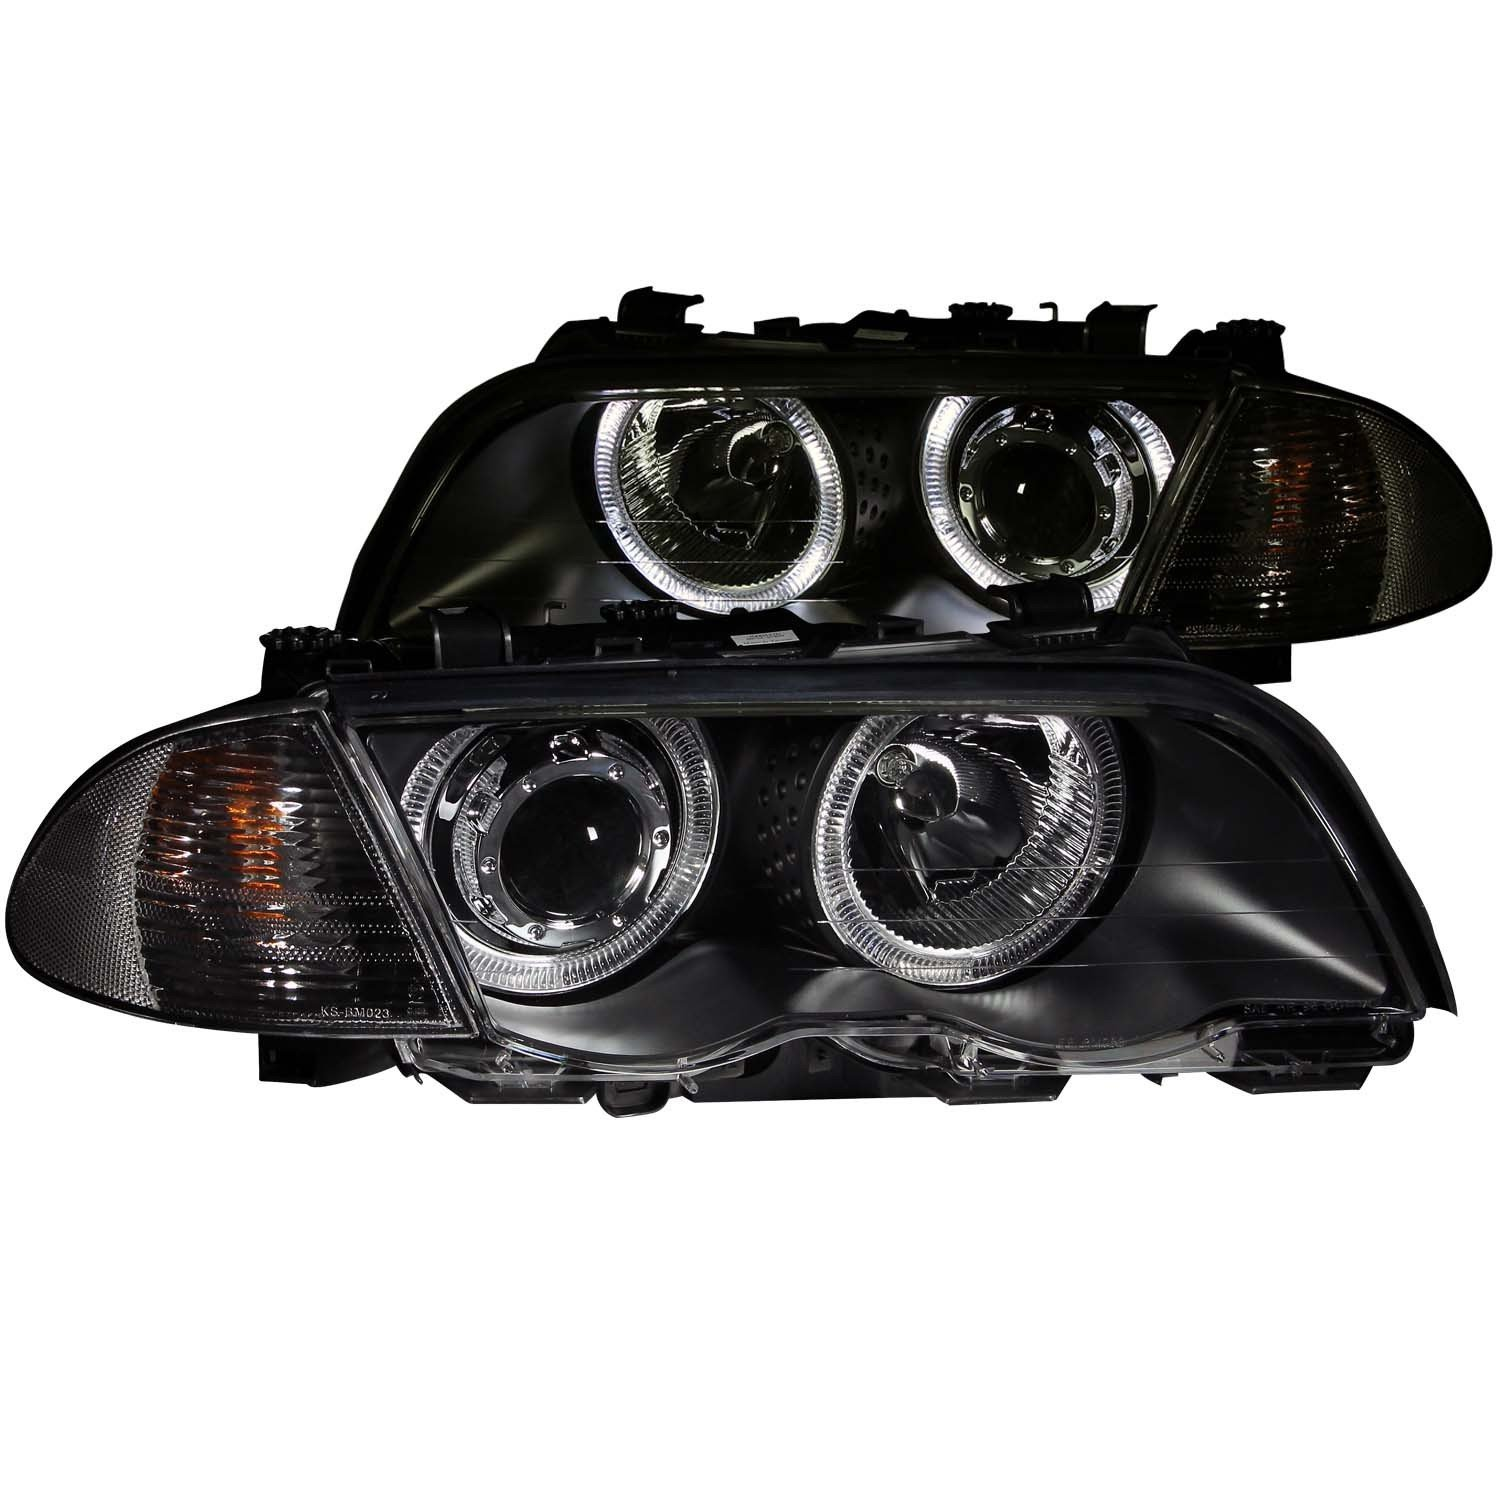 hight resolution of get quotations front headlight bmw 320i bmw 323i bmw 325i bmw 325xi bmw 328i